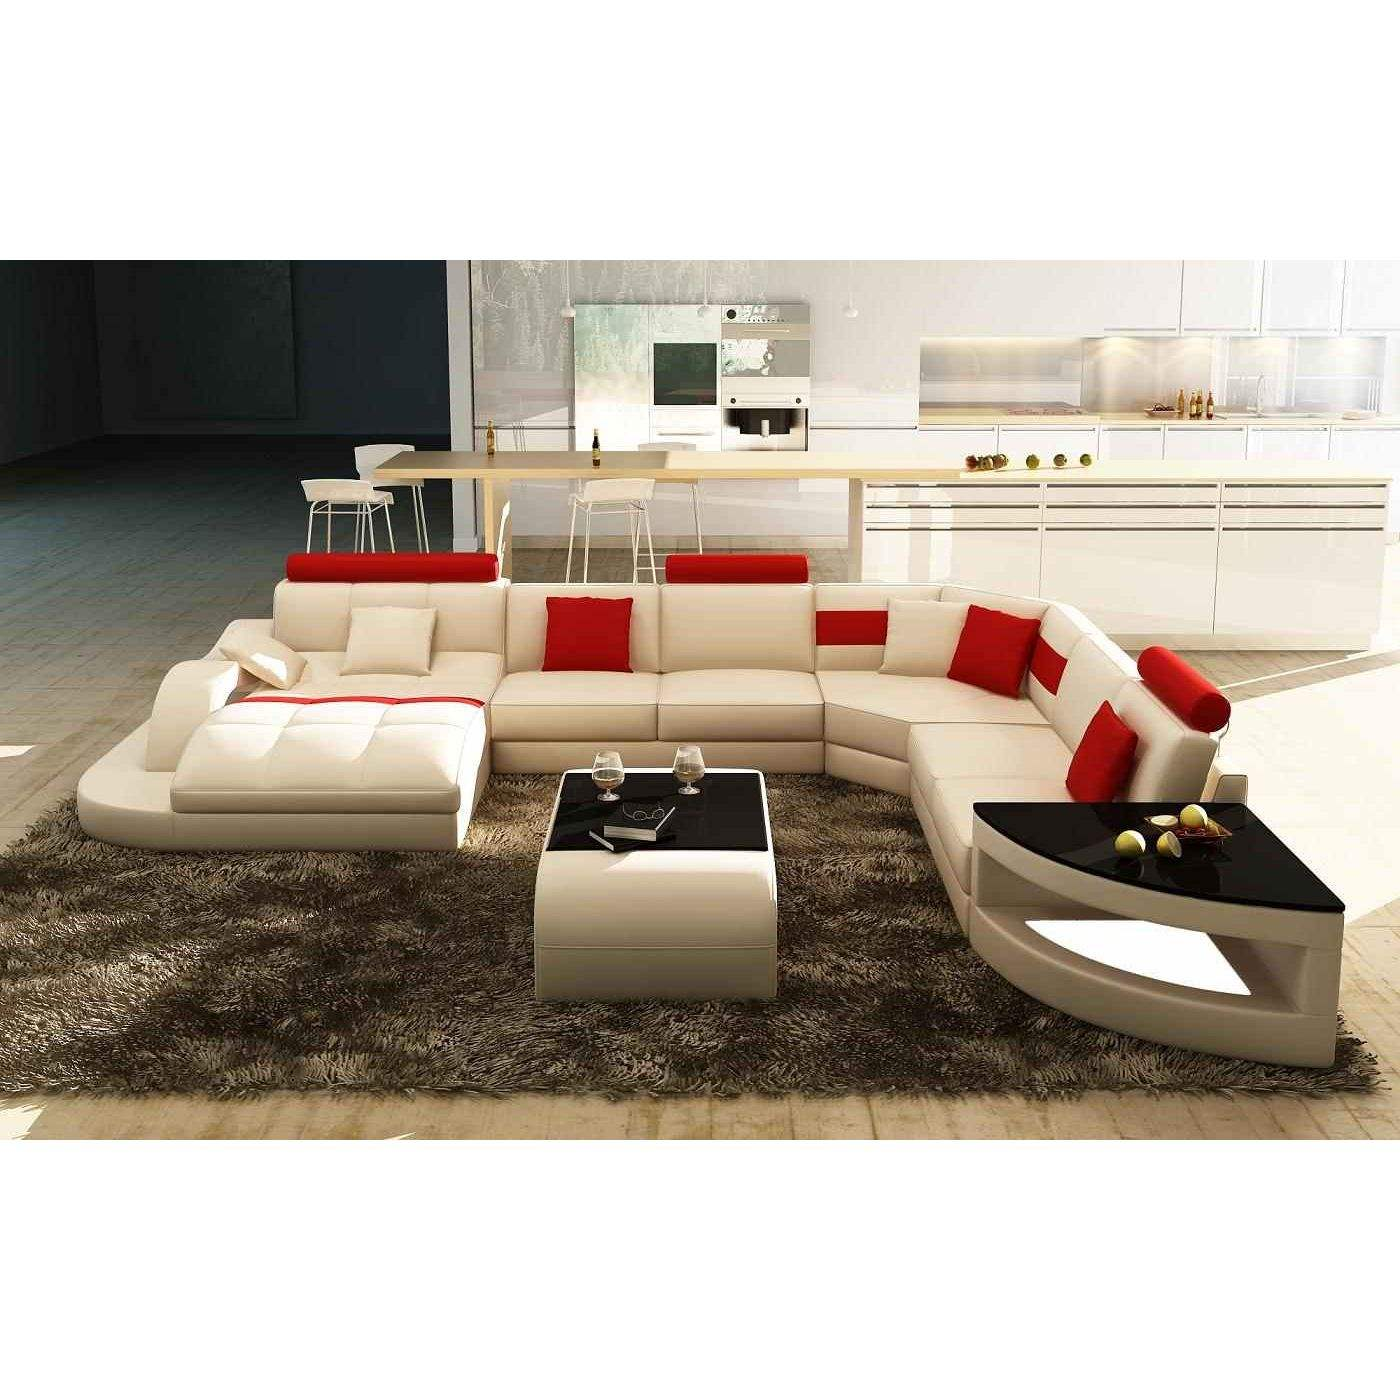 Deco in paris canape d angle design panoramique blanc et rouge istanbul pan - Canape d angle cuir rouge ...